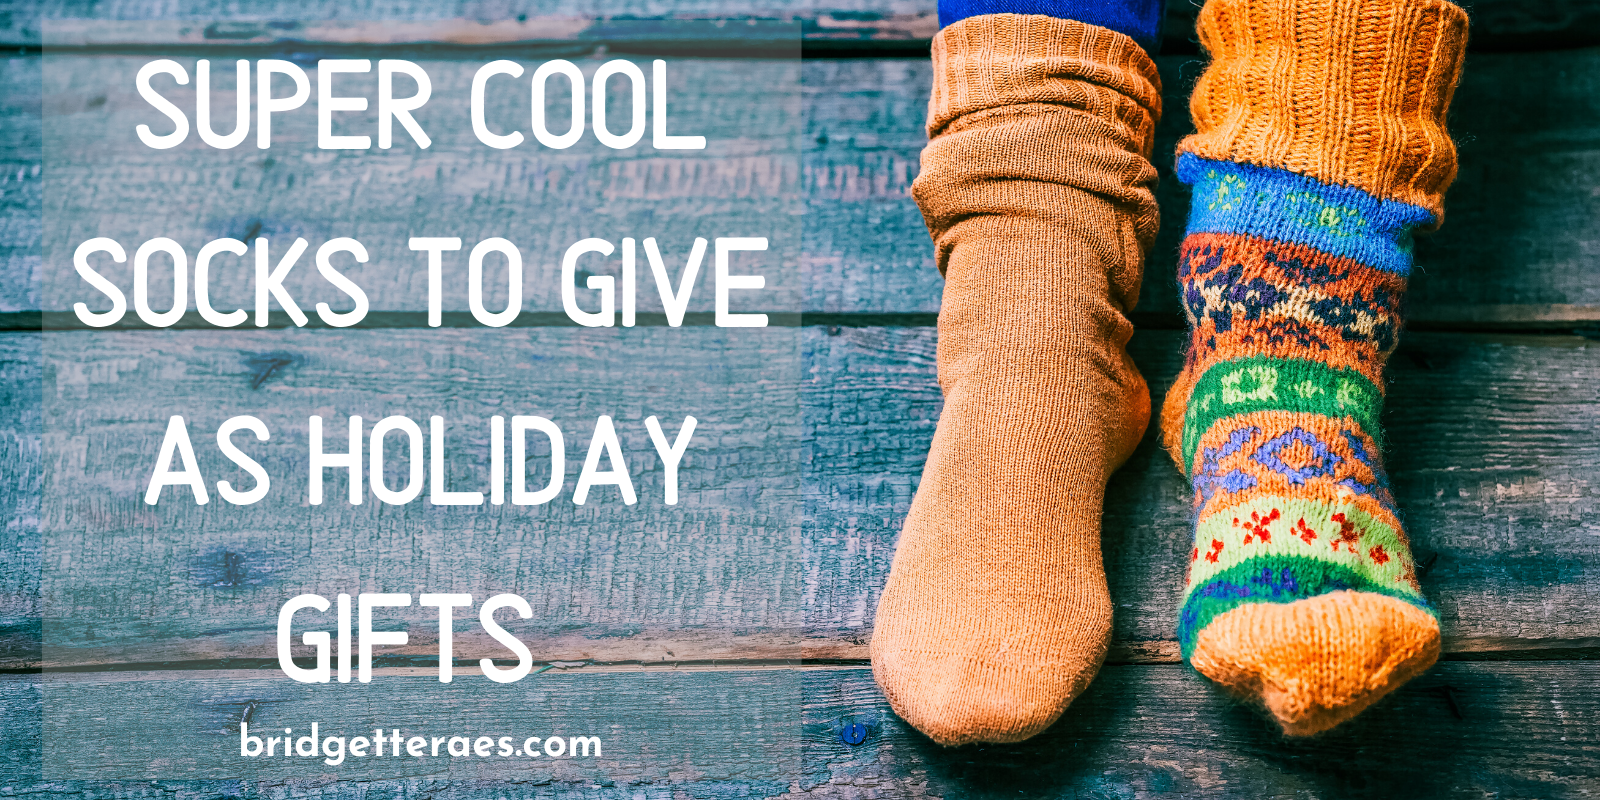 Super Cool Socks You Can Give as Holiday Gifts